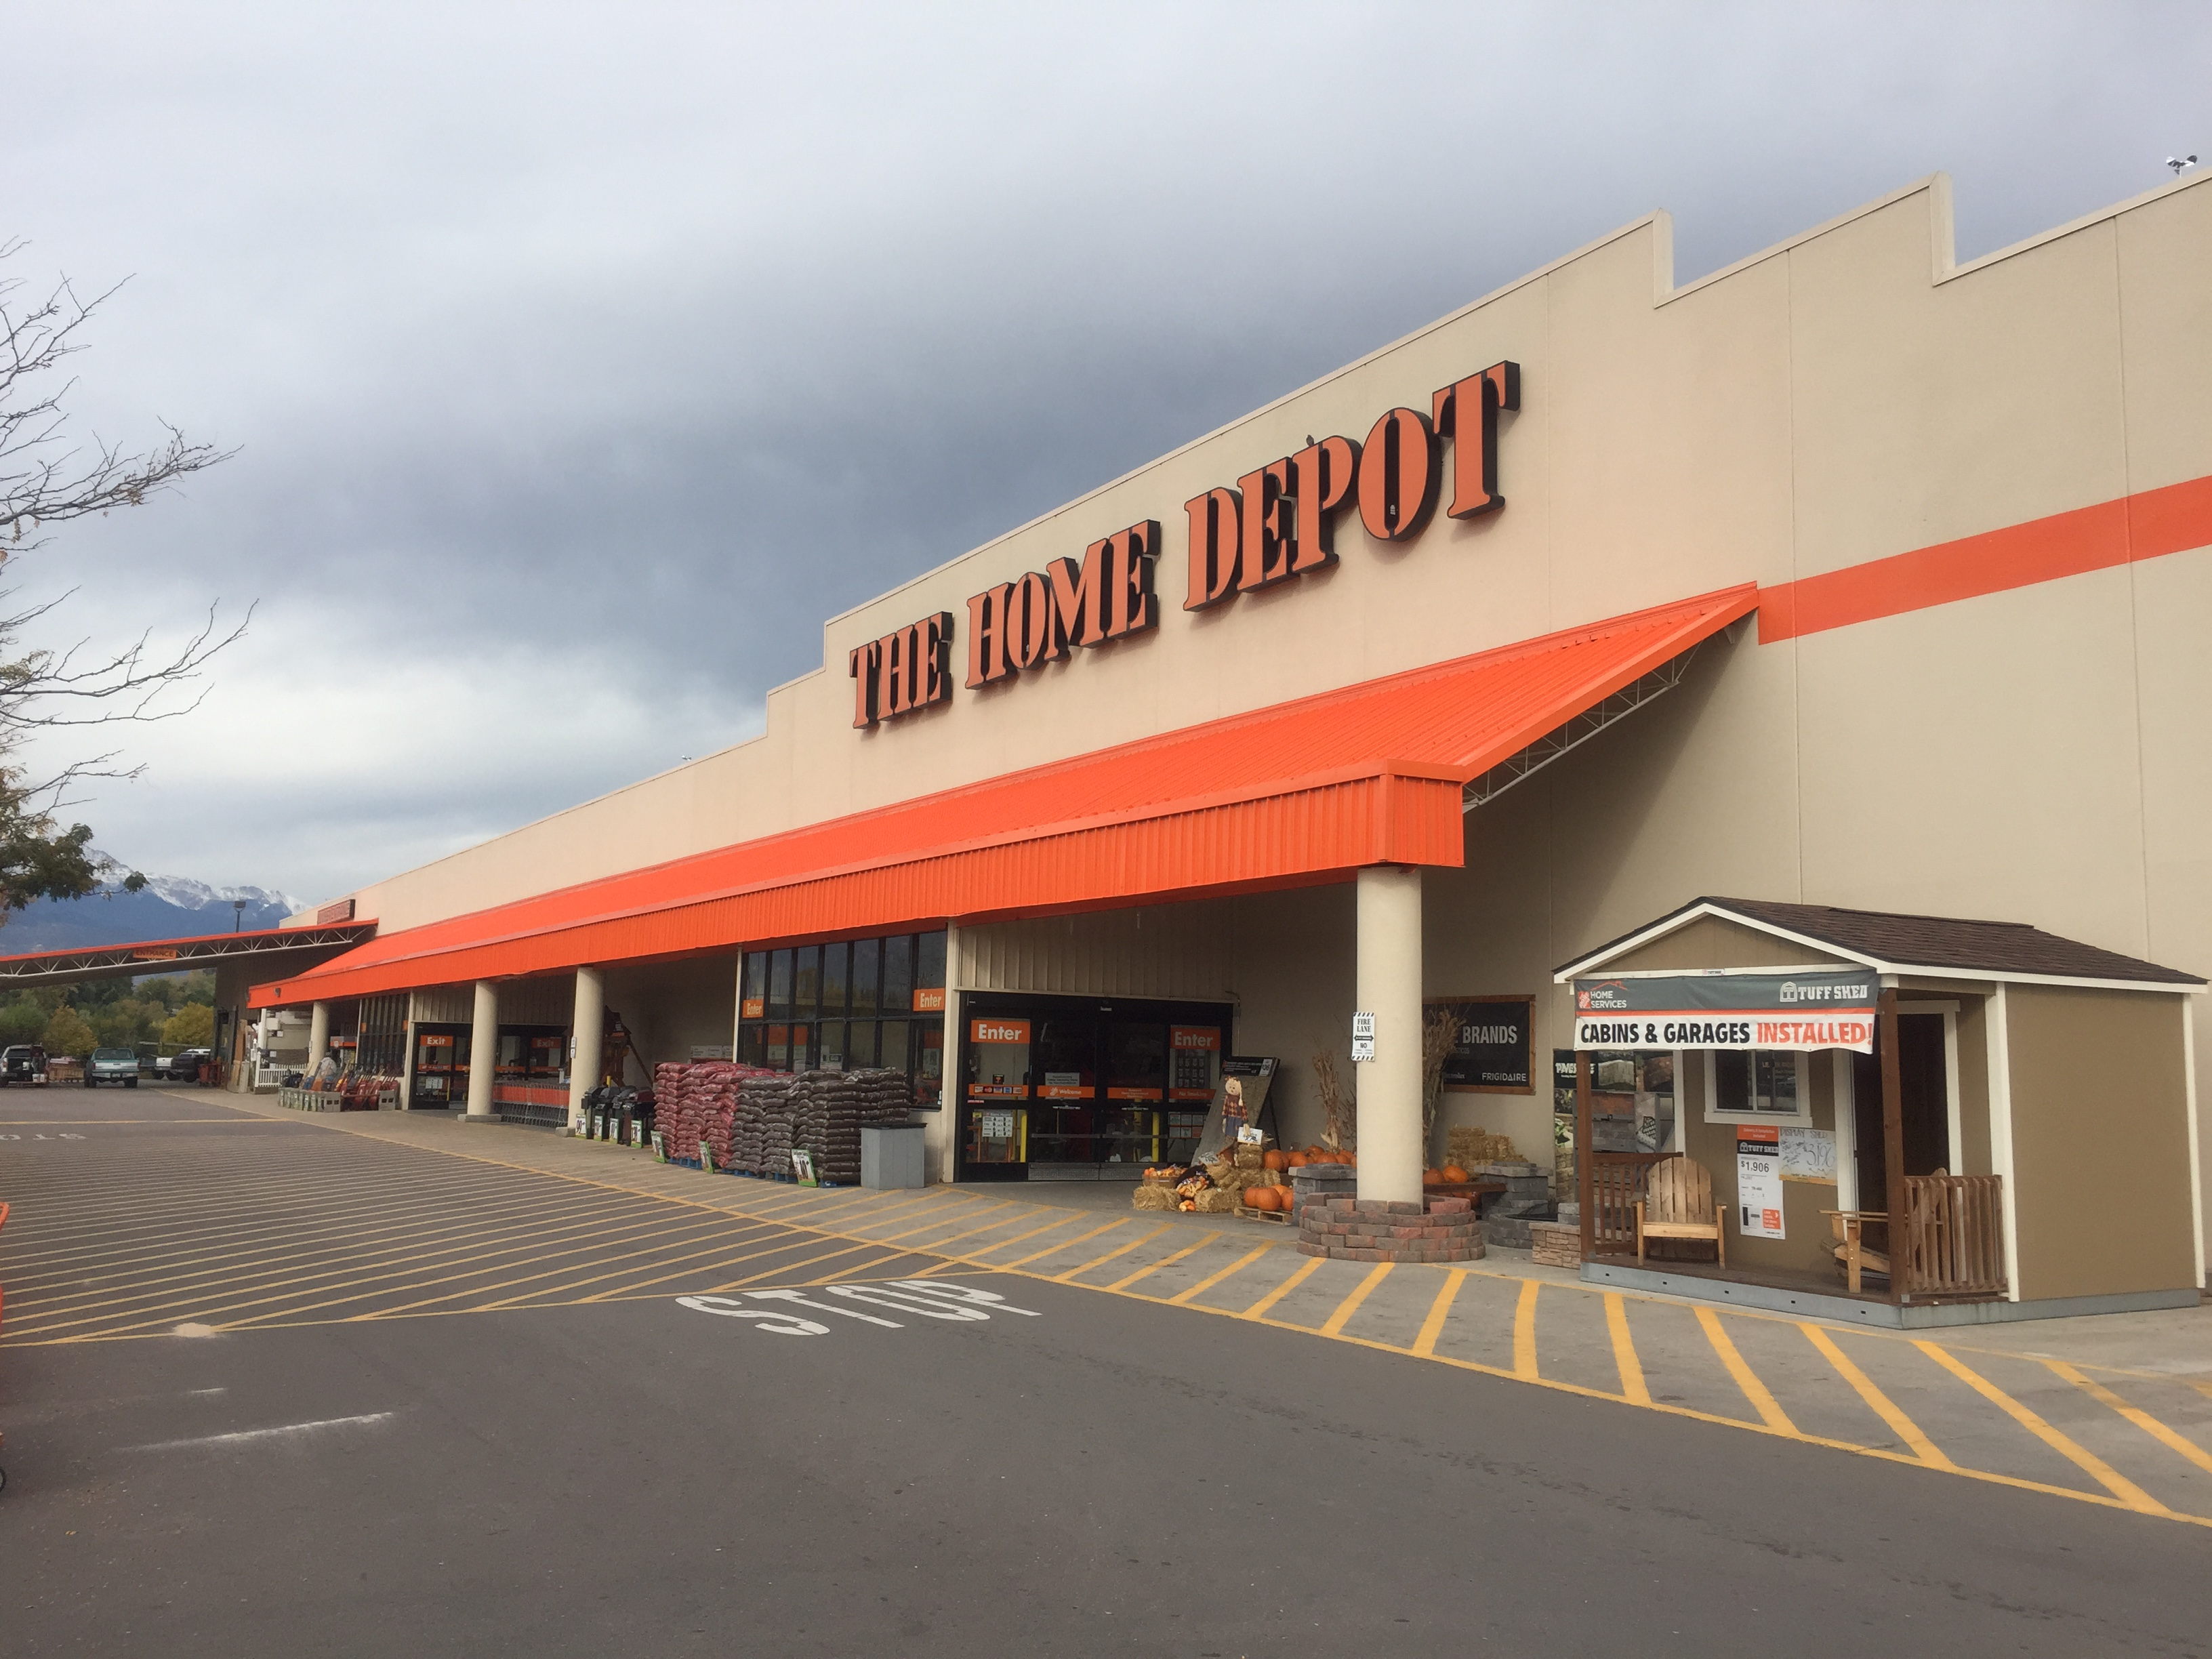 The Home Depot 102 N Academy Rd Colorado Springs, CO Hardware Stores ...